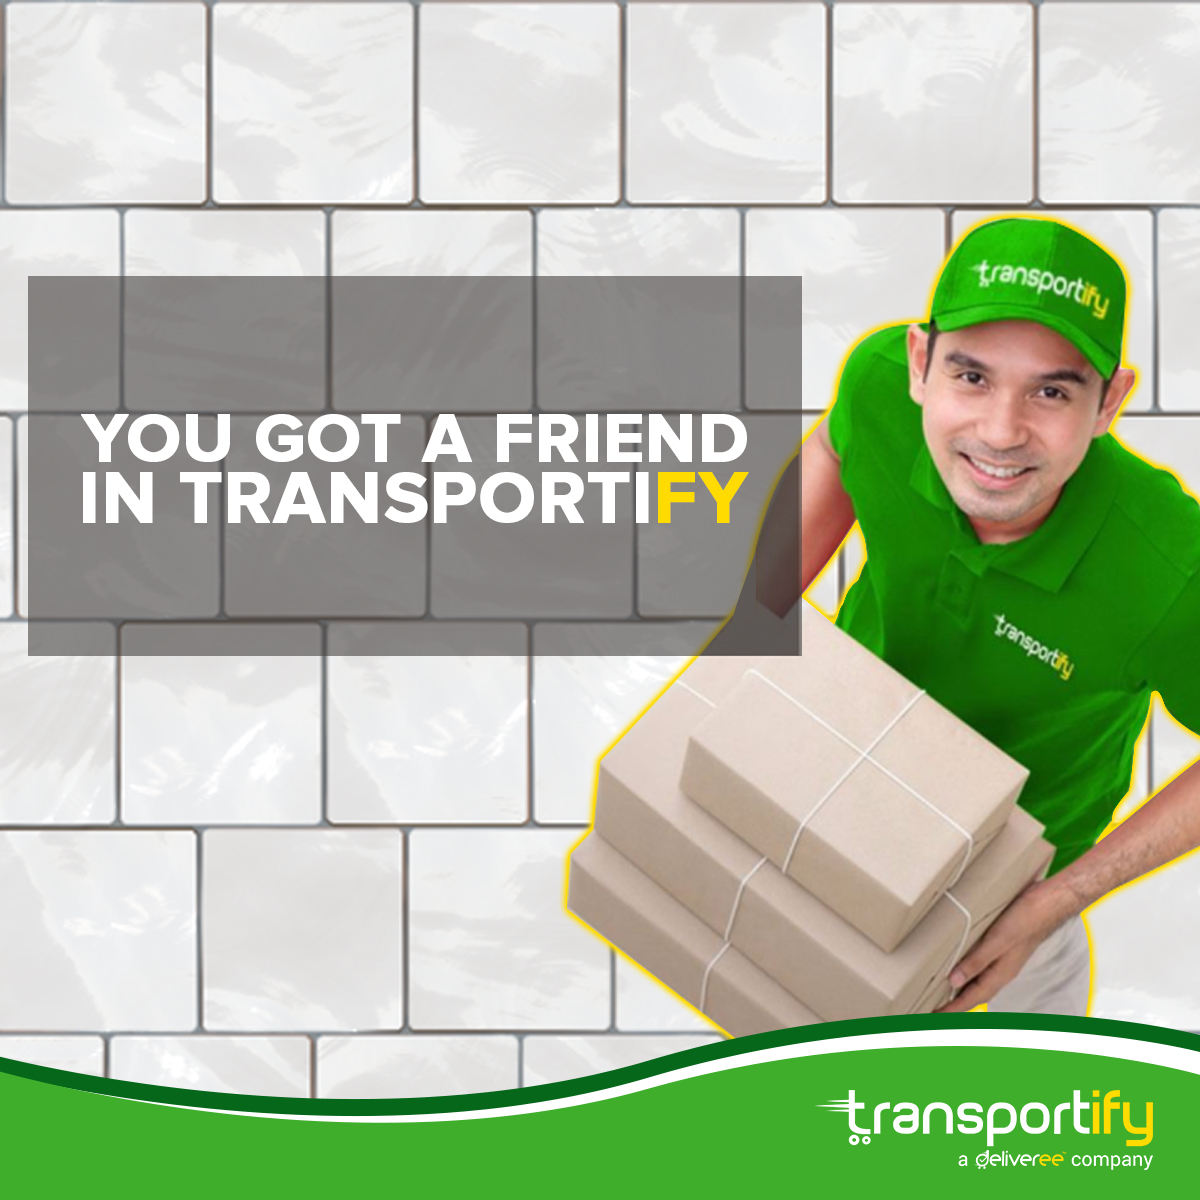 transportify, transportify philippines, logistics services in the philippines, transportify truck, logistics support app, fast courier, delivery driver partners